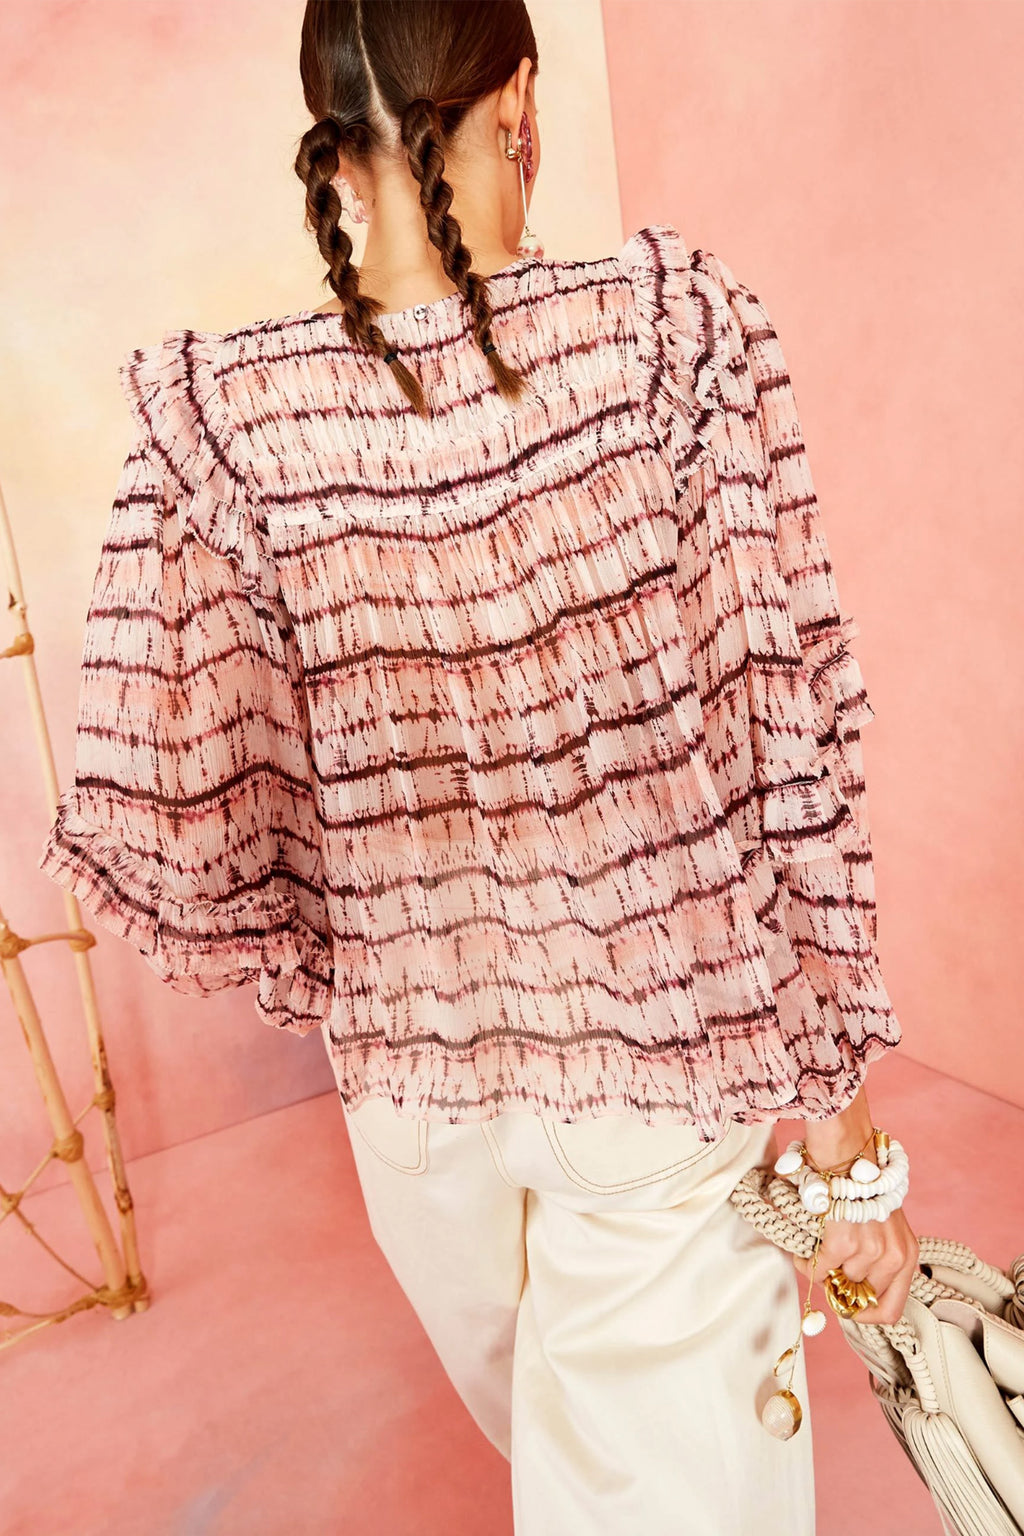 Ulla Johnson Isolde Blouse in Blush Tie Dye